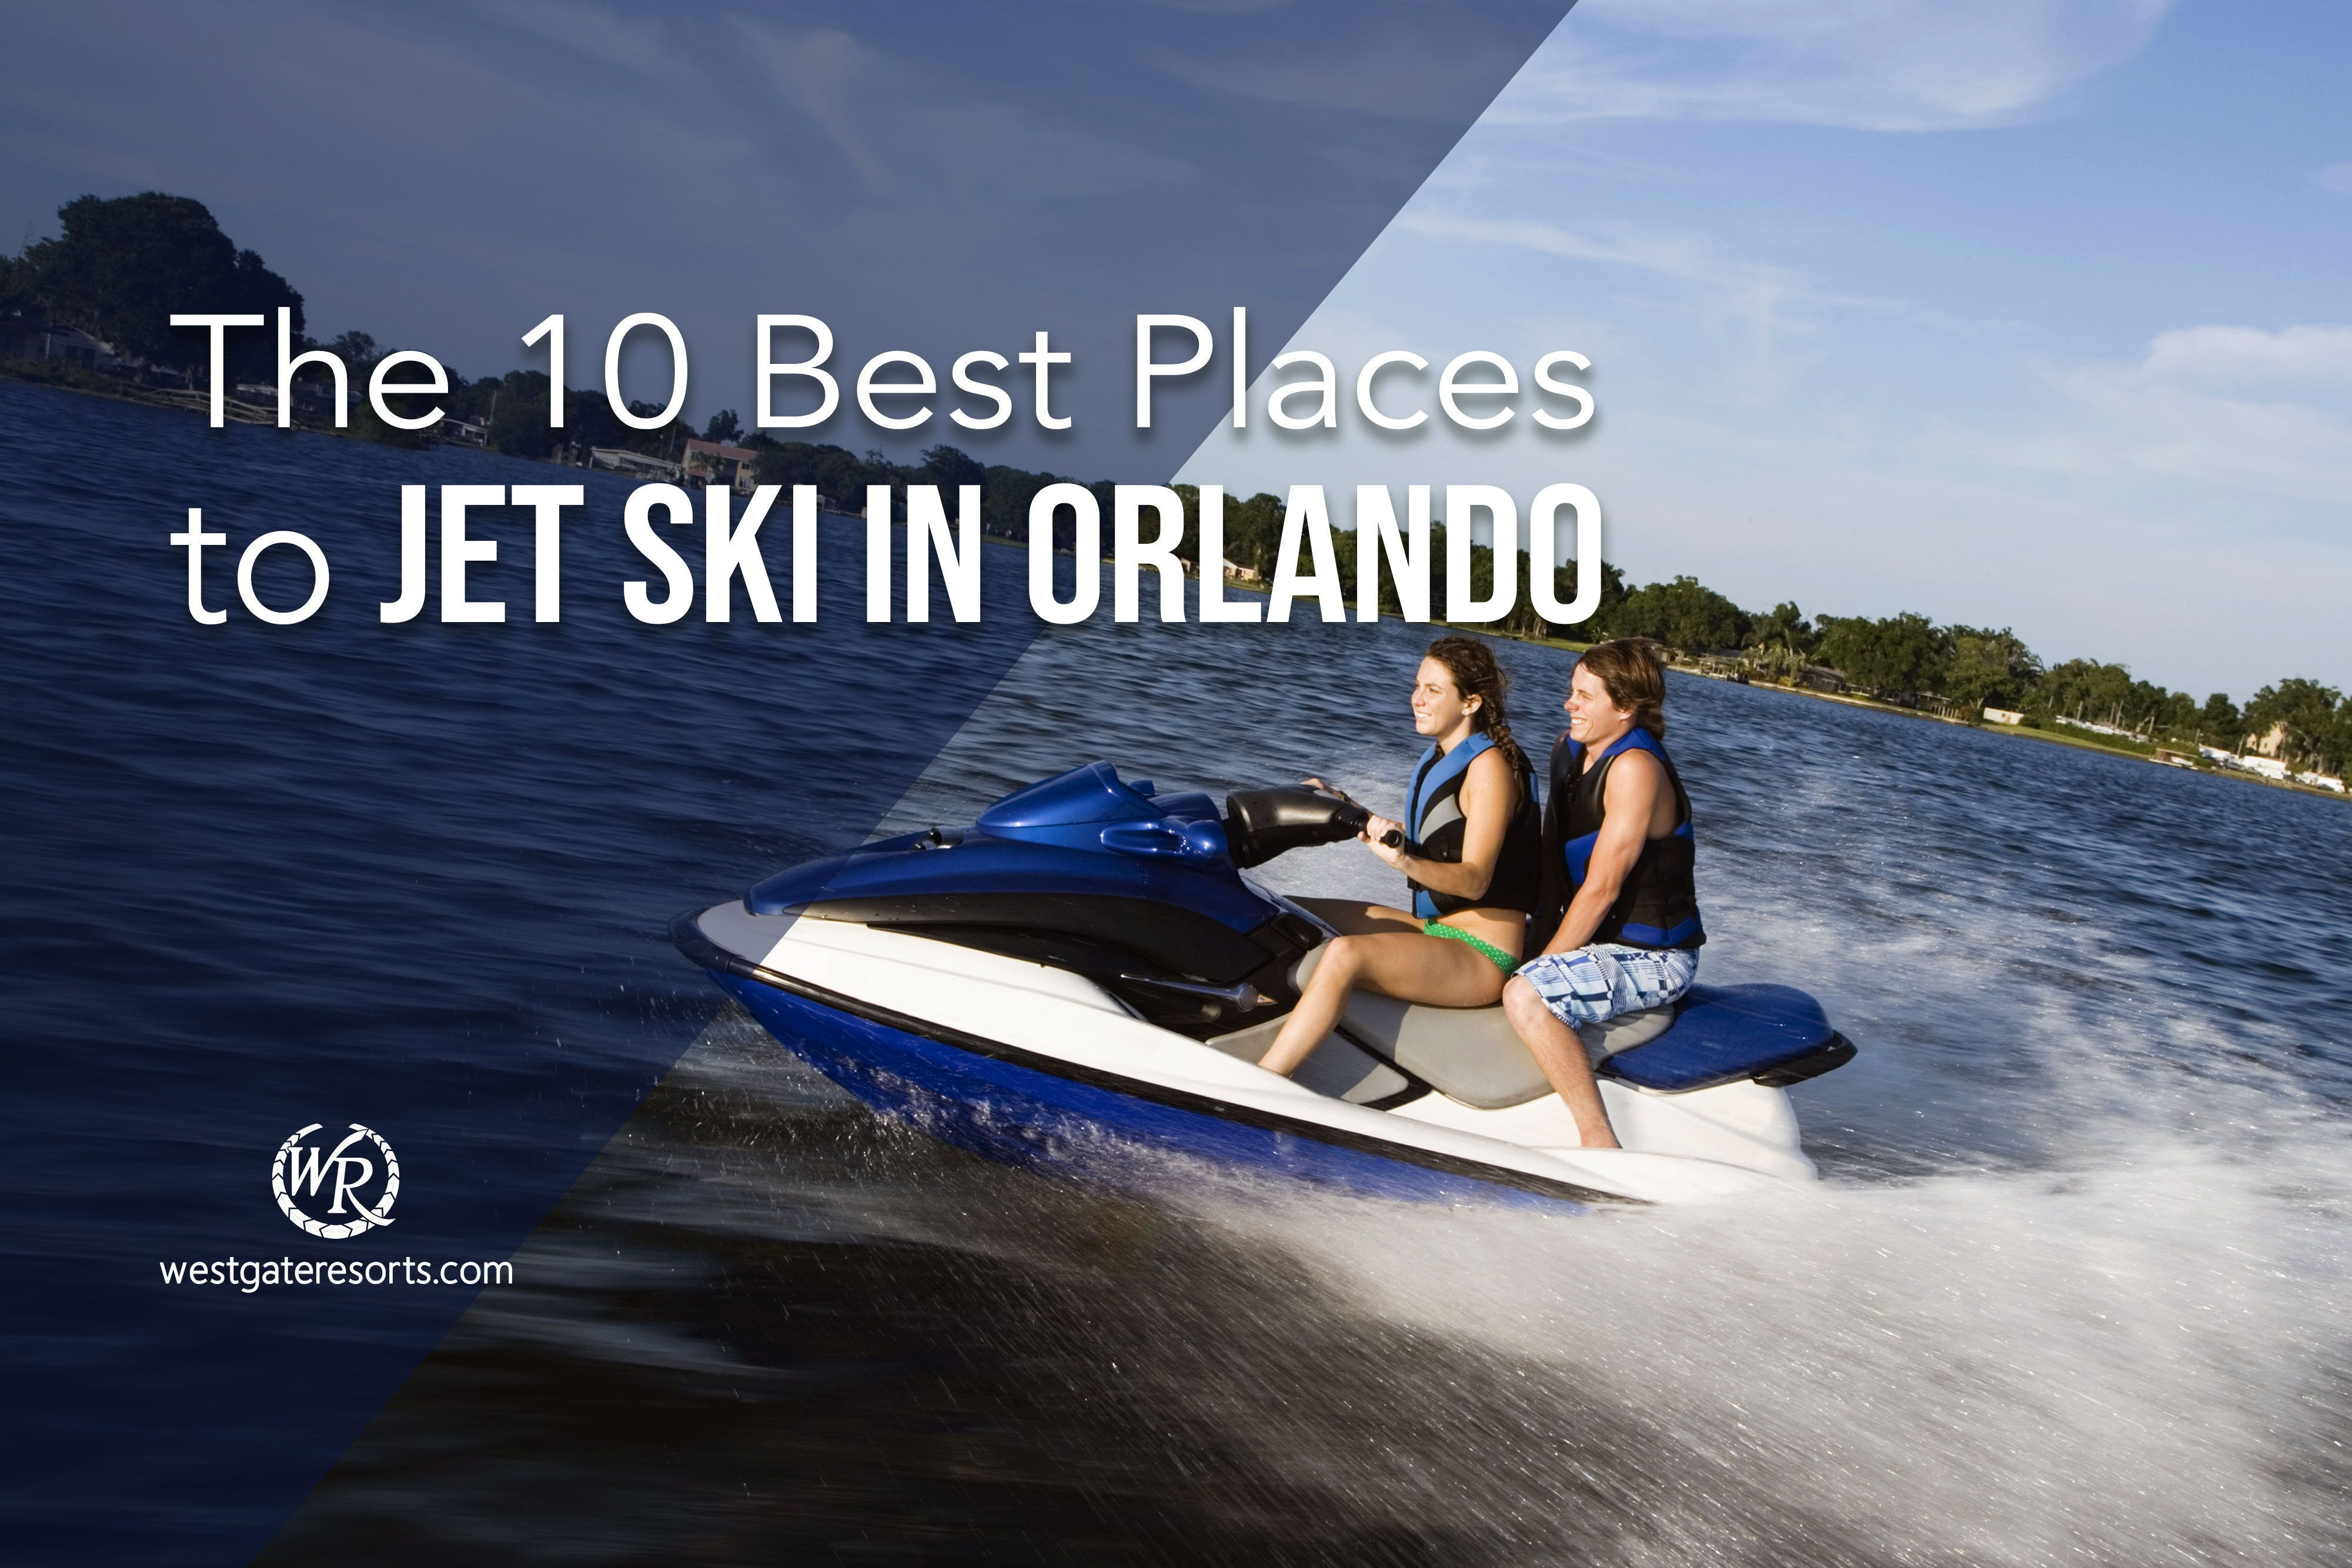 The 10 Best Places to Jet Ski in Orlando